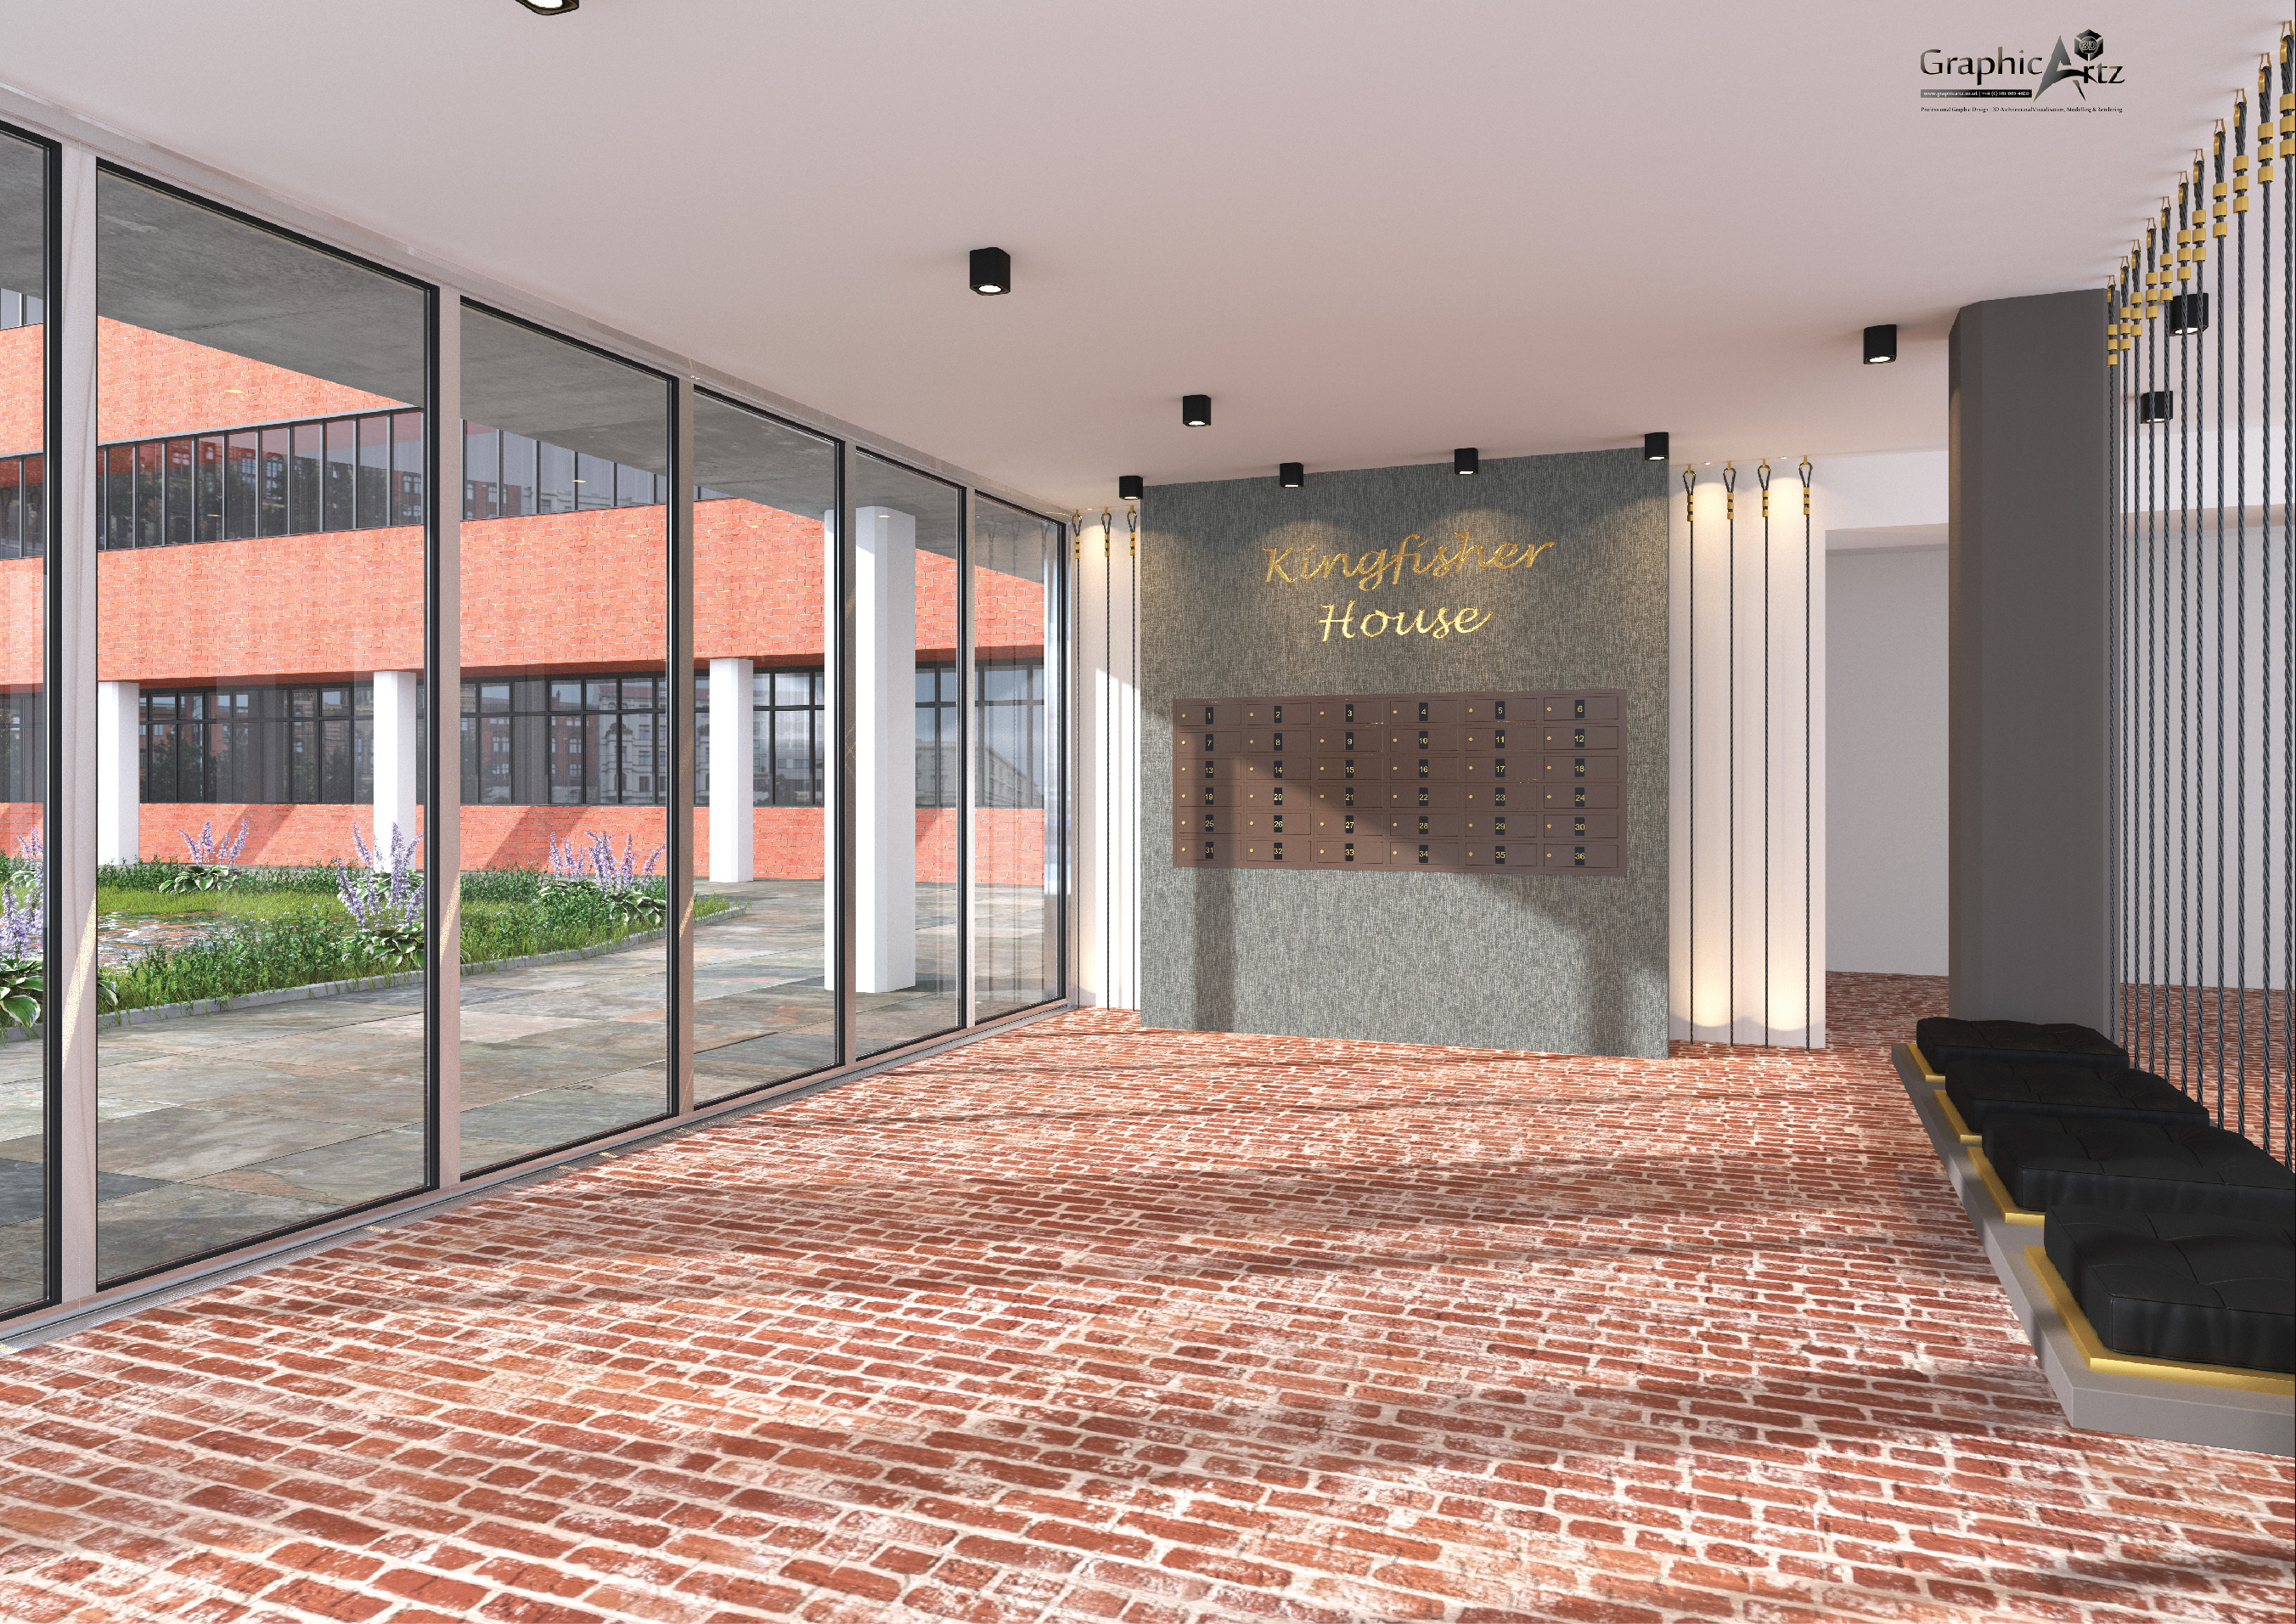 Kingfisher House CGI Lobby